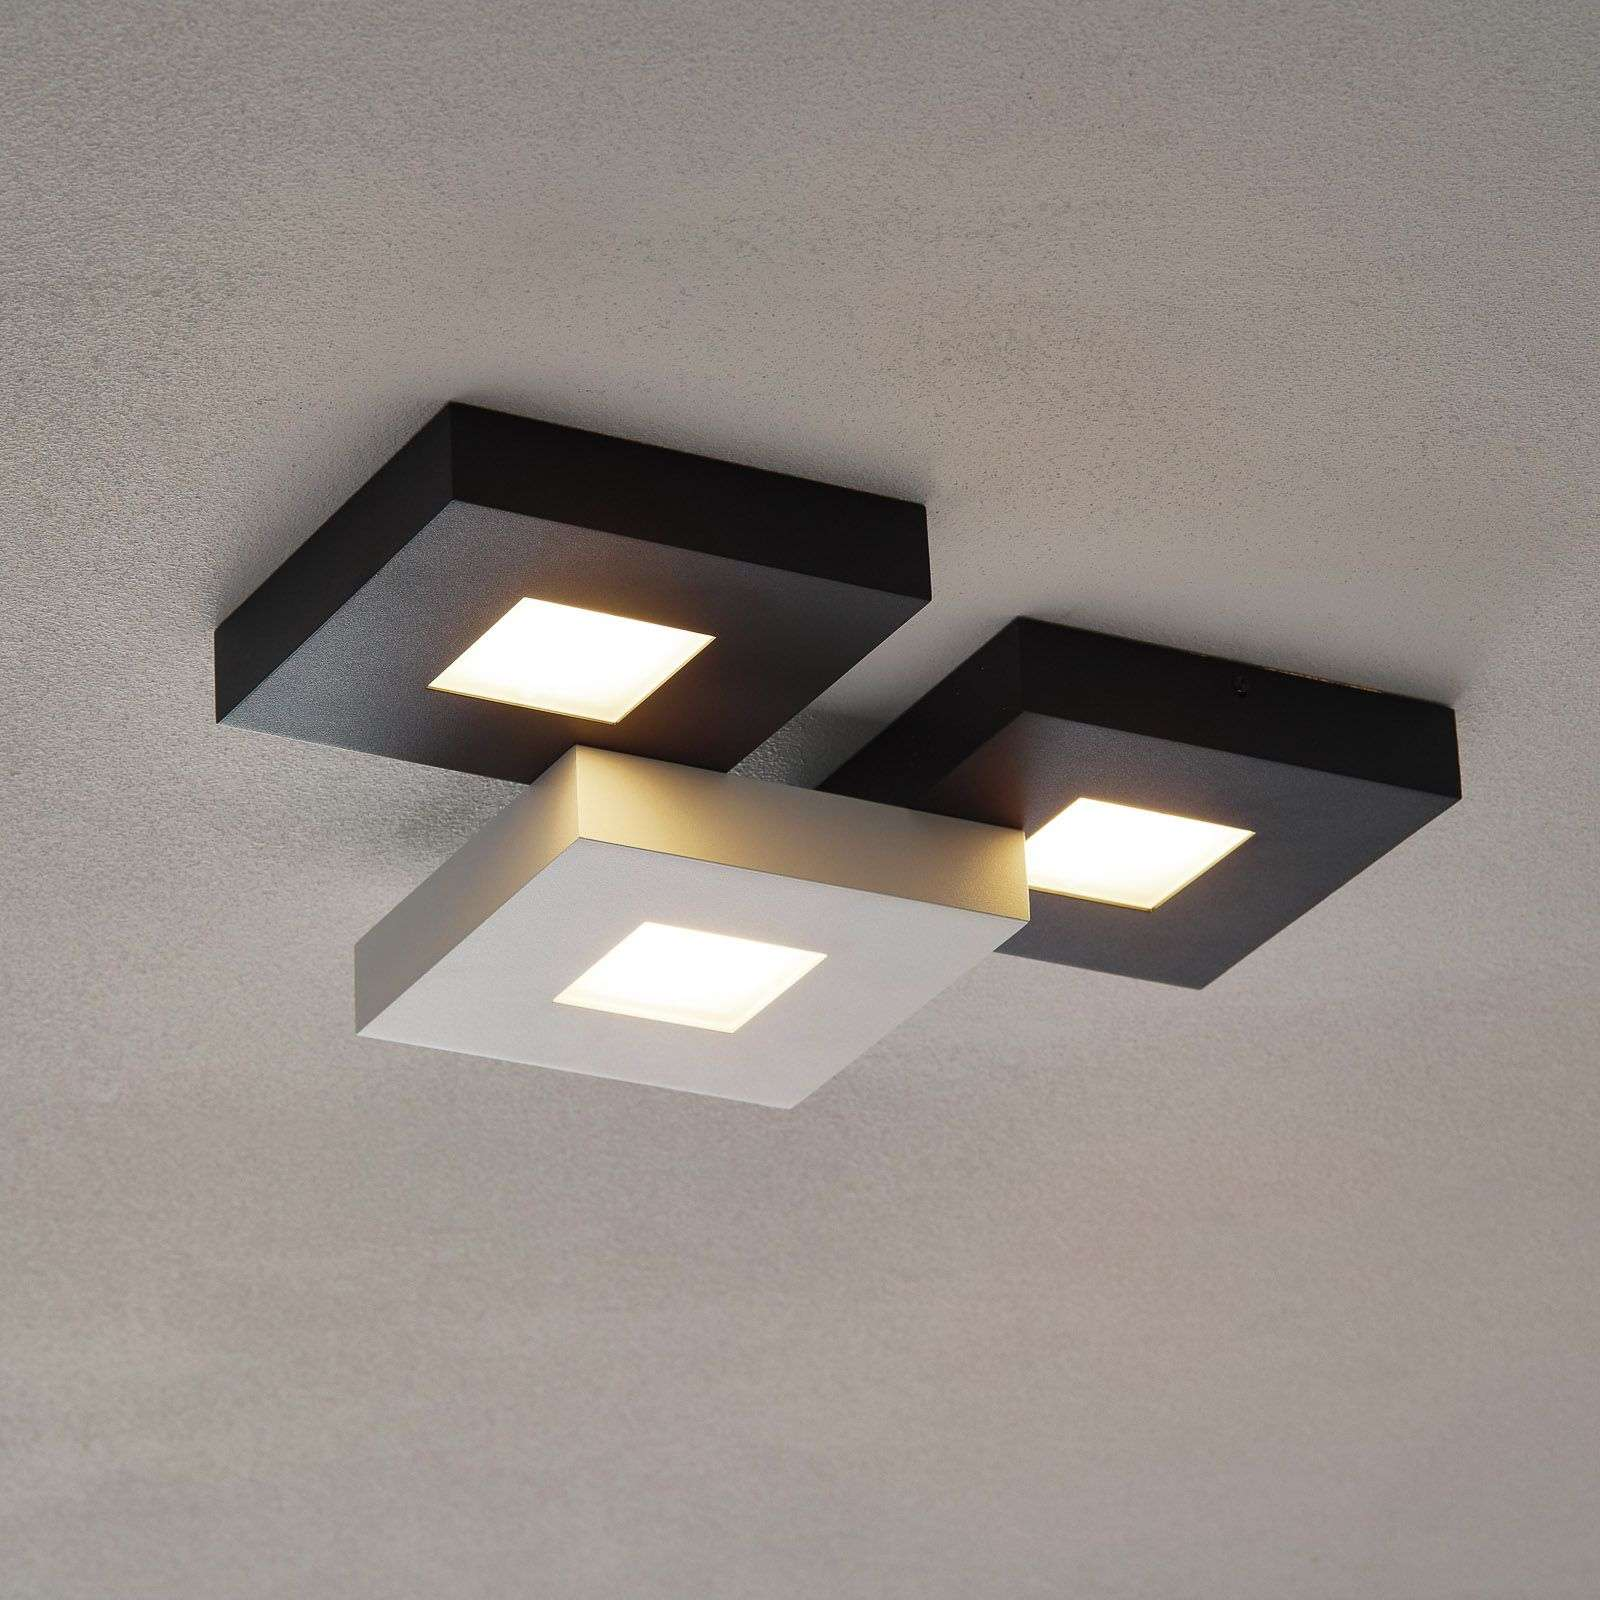 Lámpara de techo LED Cubus, 3 luces, blanco-negro